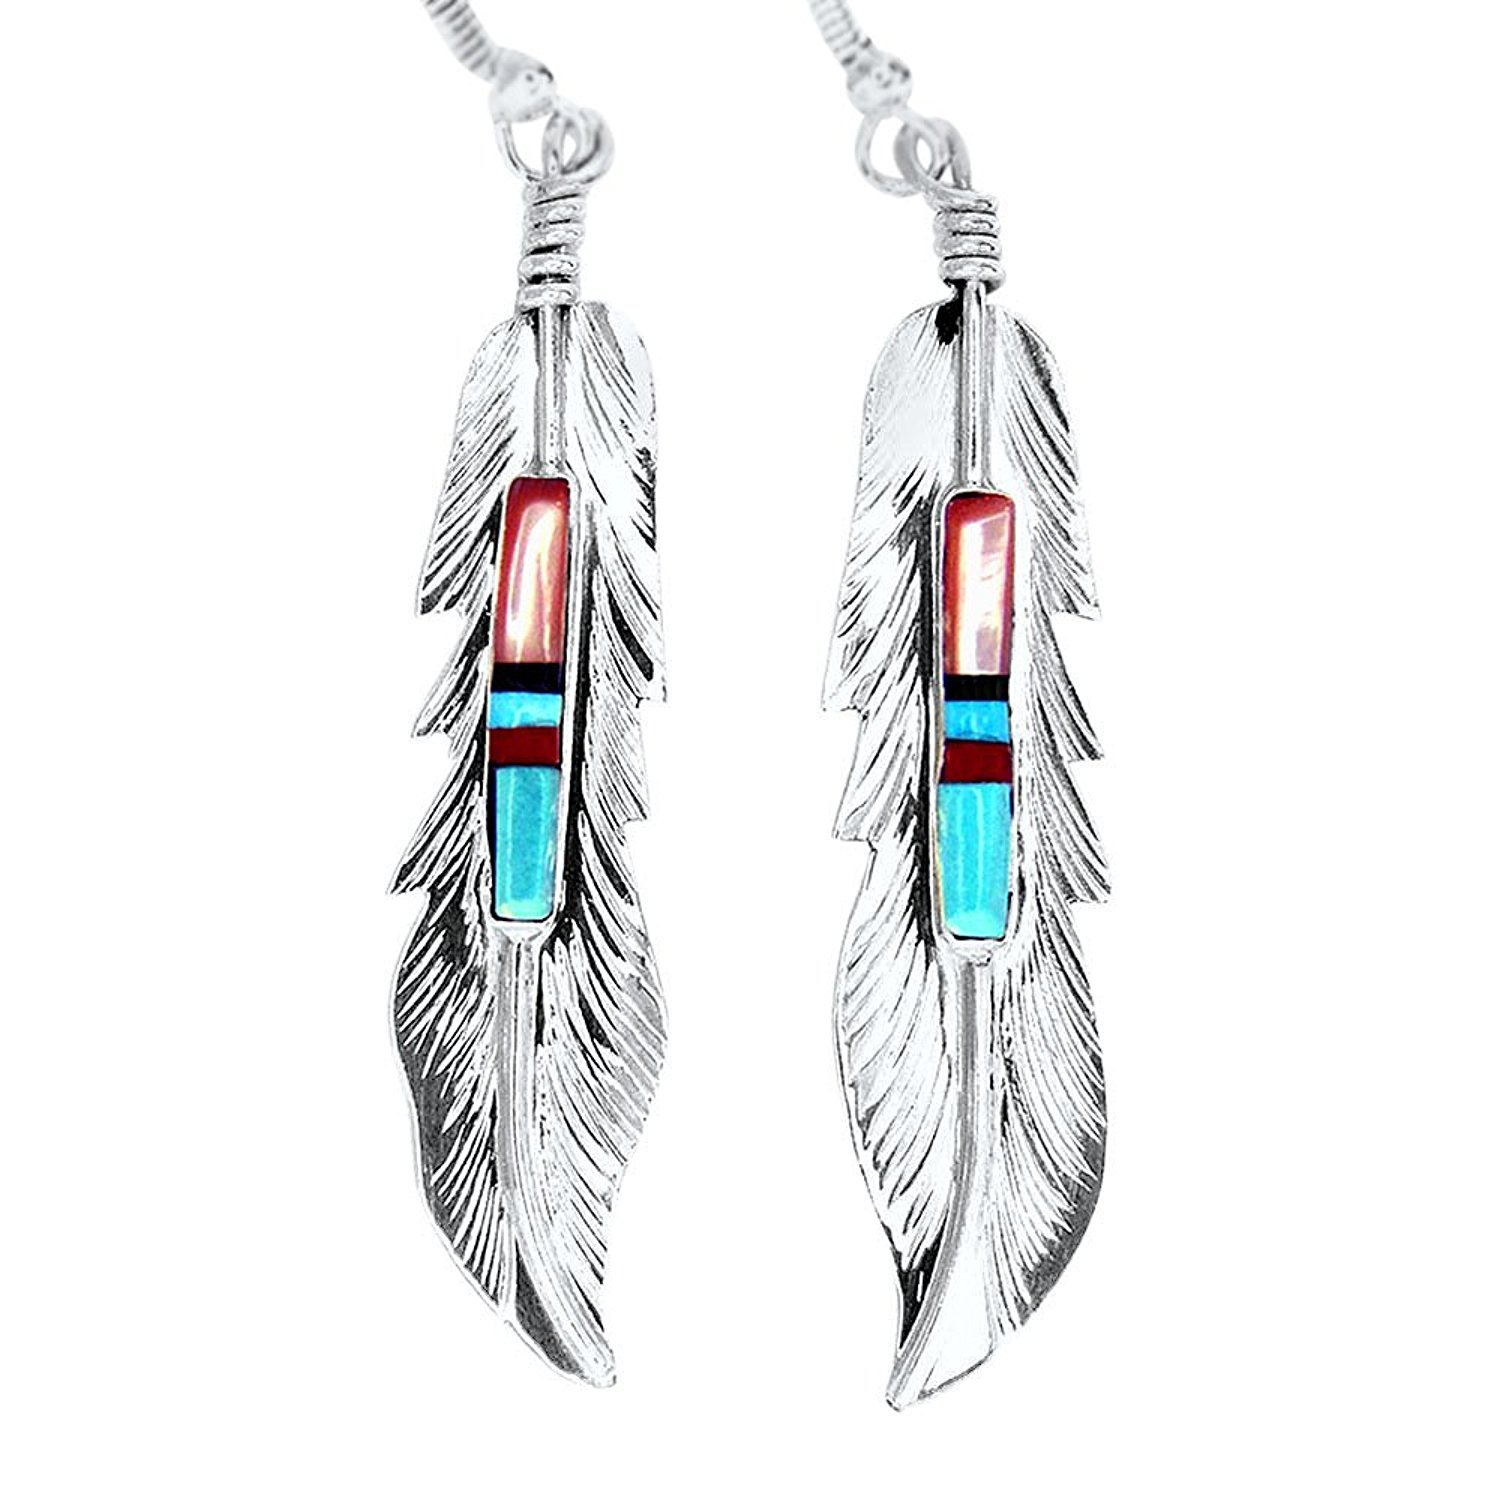 USA Made!!! BY Navajo Artist Freddy Barney: Hand crafted Sterling silver & treated Natural stones earrings